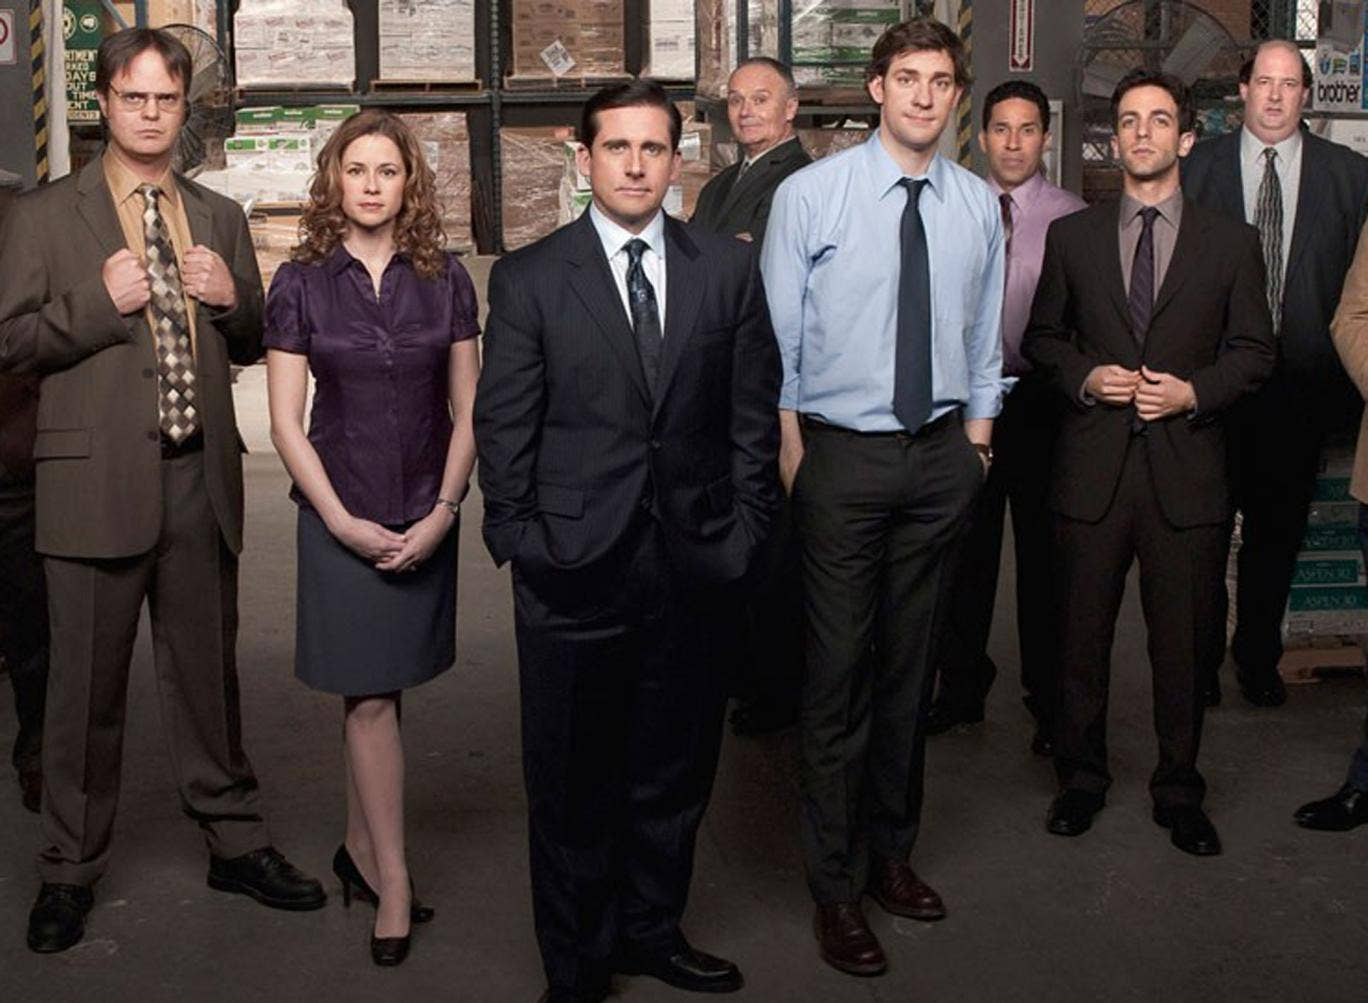 The Office has been a big part of NBC's schedule for years. It is also a prominent product placer, with plots revolving around such brands as Chili's and Stap